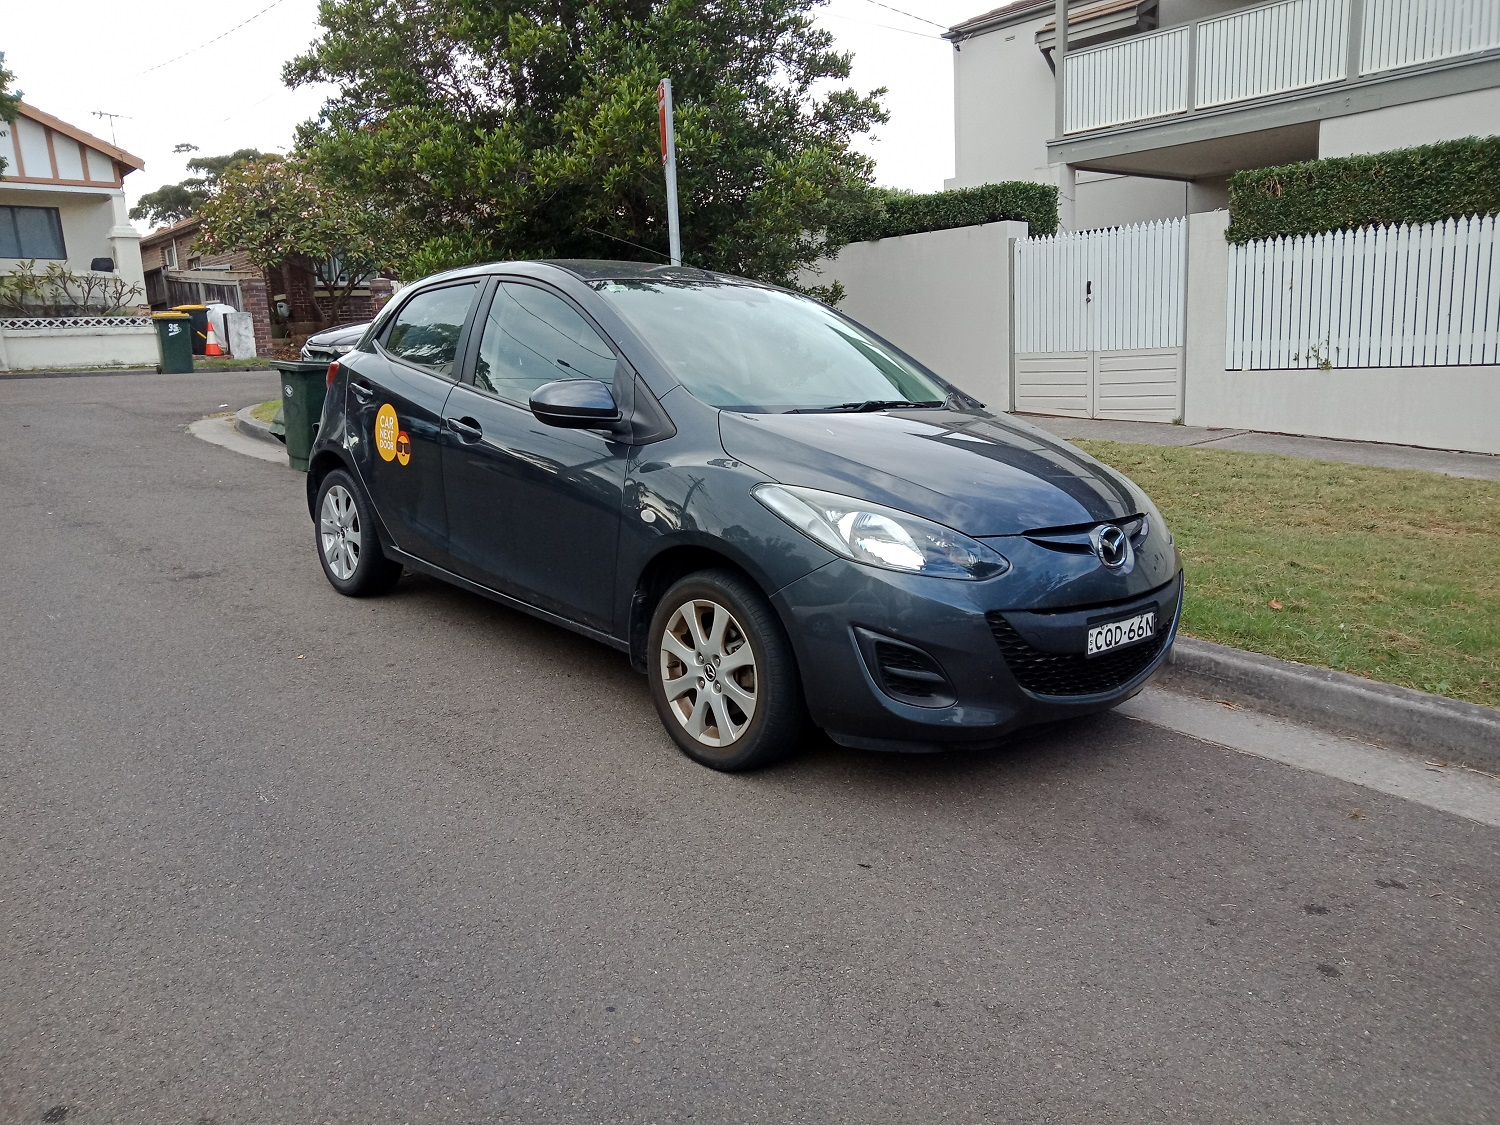 Picture of Joshua's 2013 Mazda 2